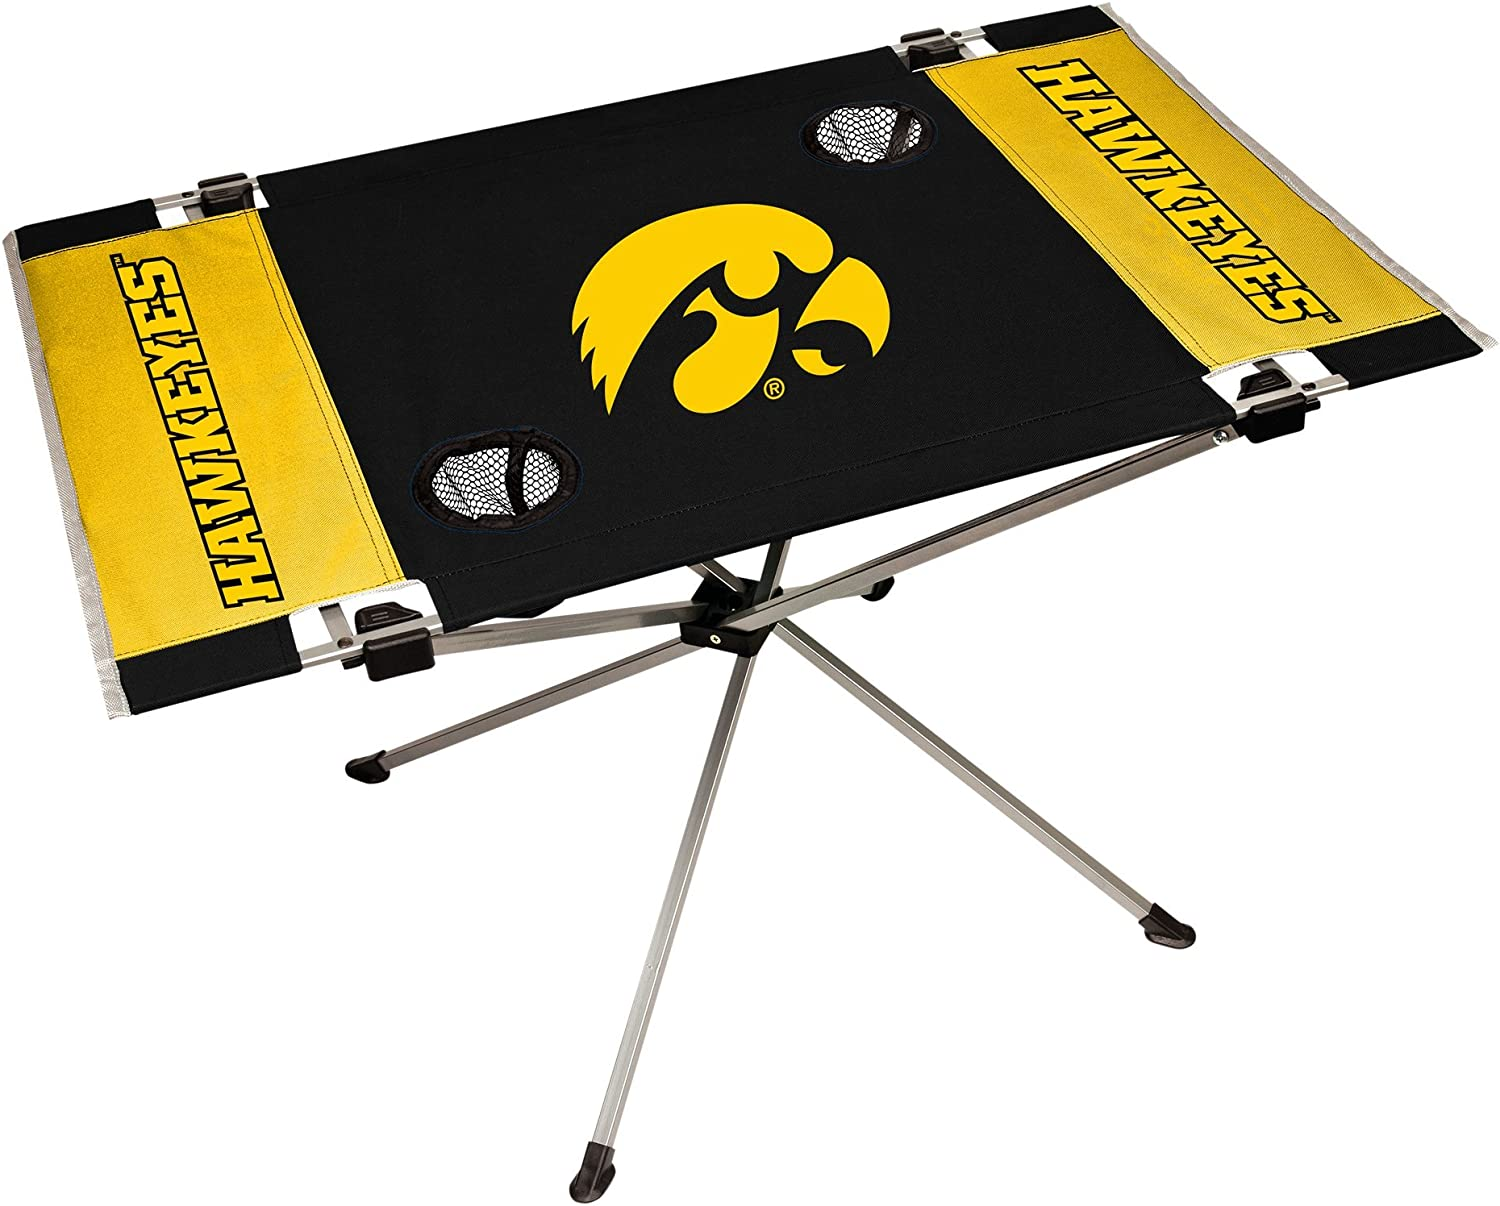 NCAA End Zone Table All Team Options 31.5 x 20.7 x 19